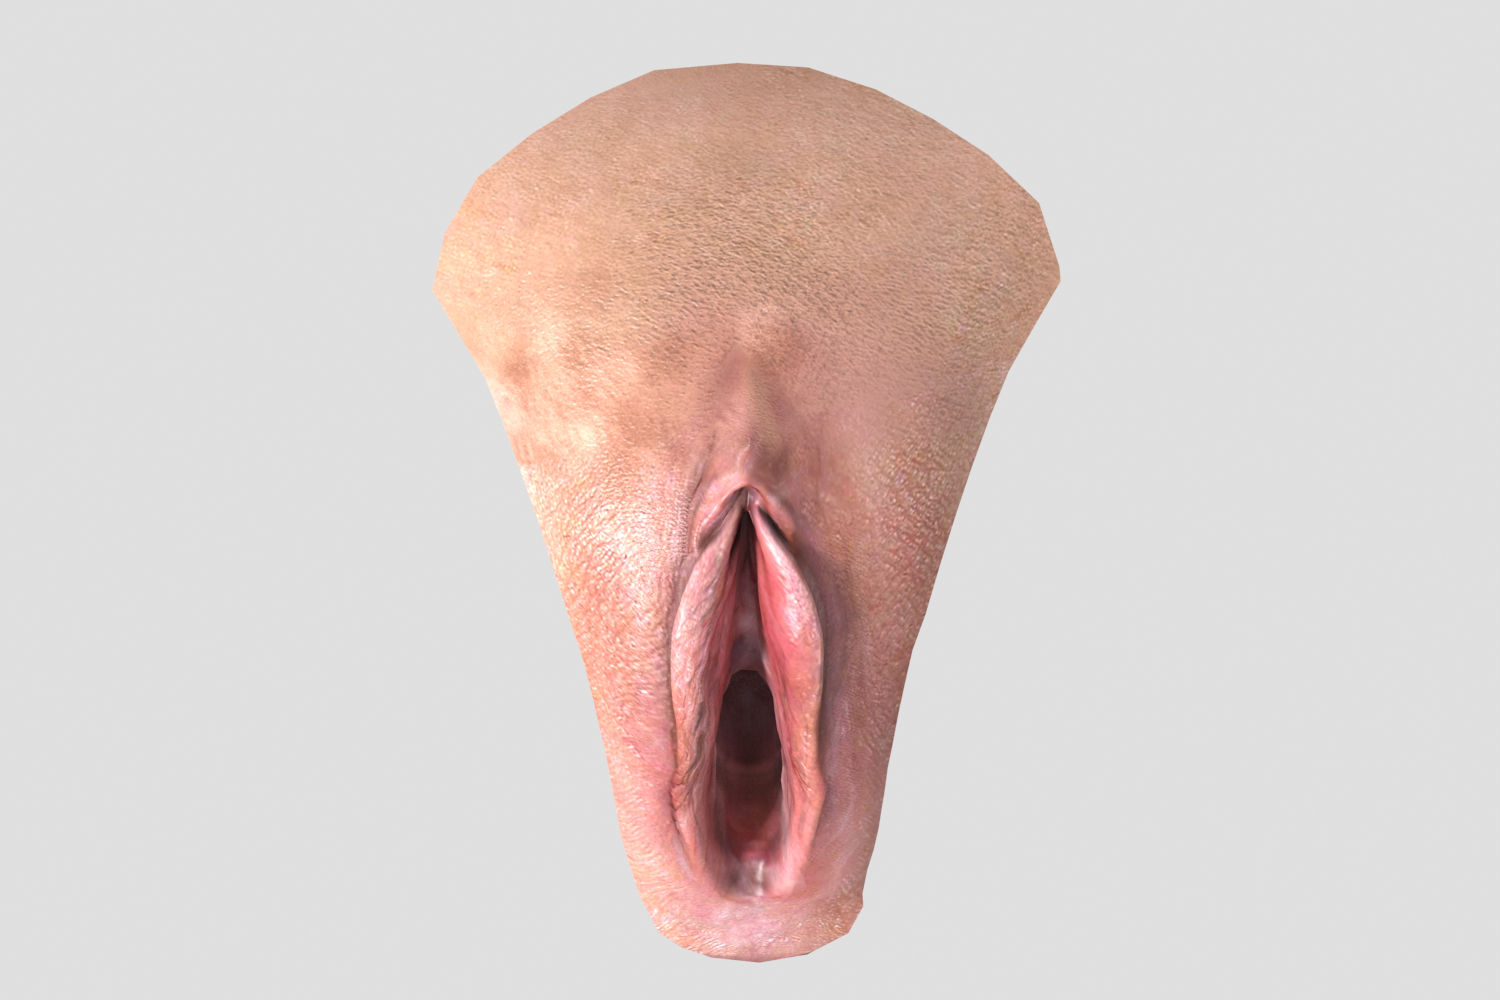 Animation Female Vagina 3d Model In Anatomy 3dexport